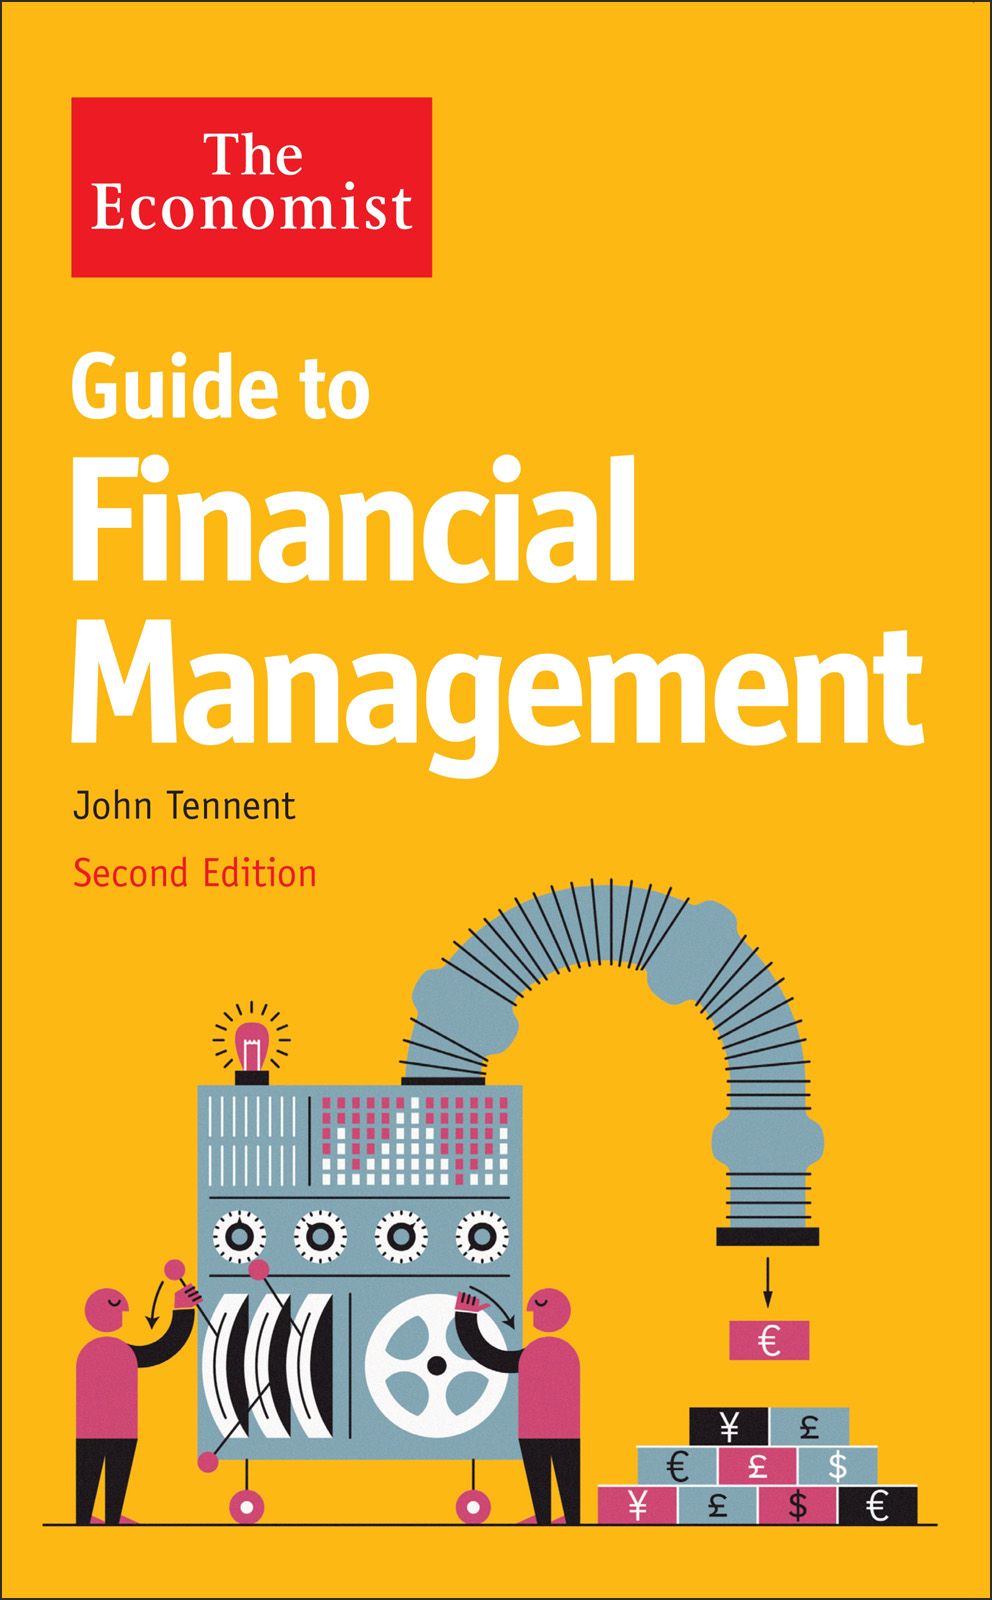 The Economist Guide to Financial Management, 2nd Edition